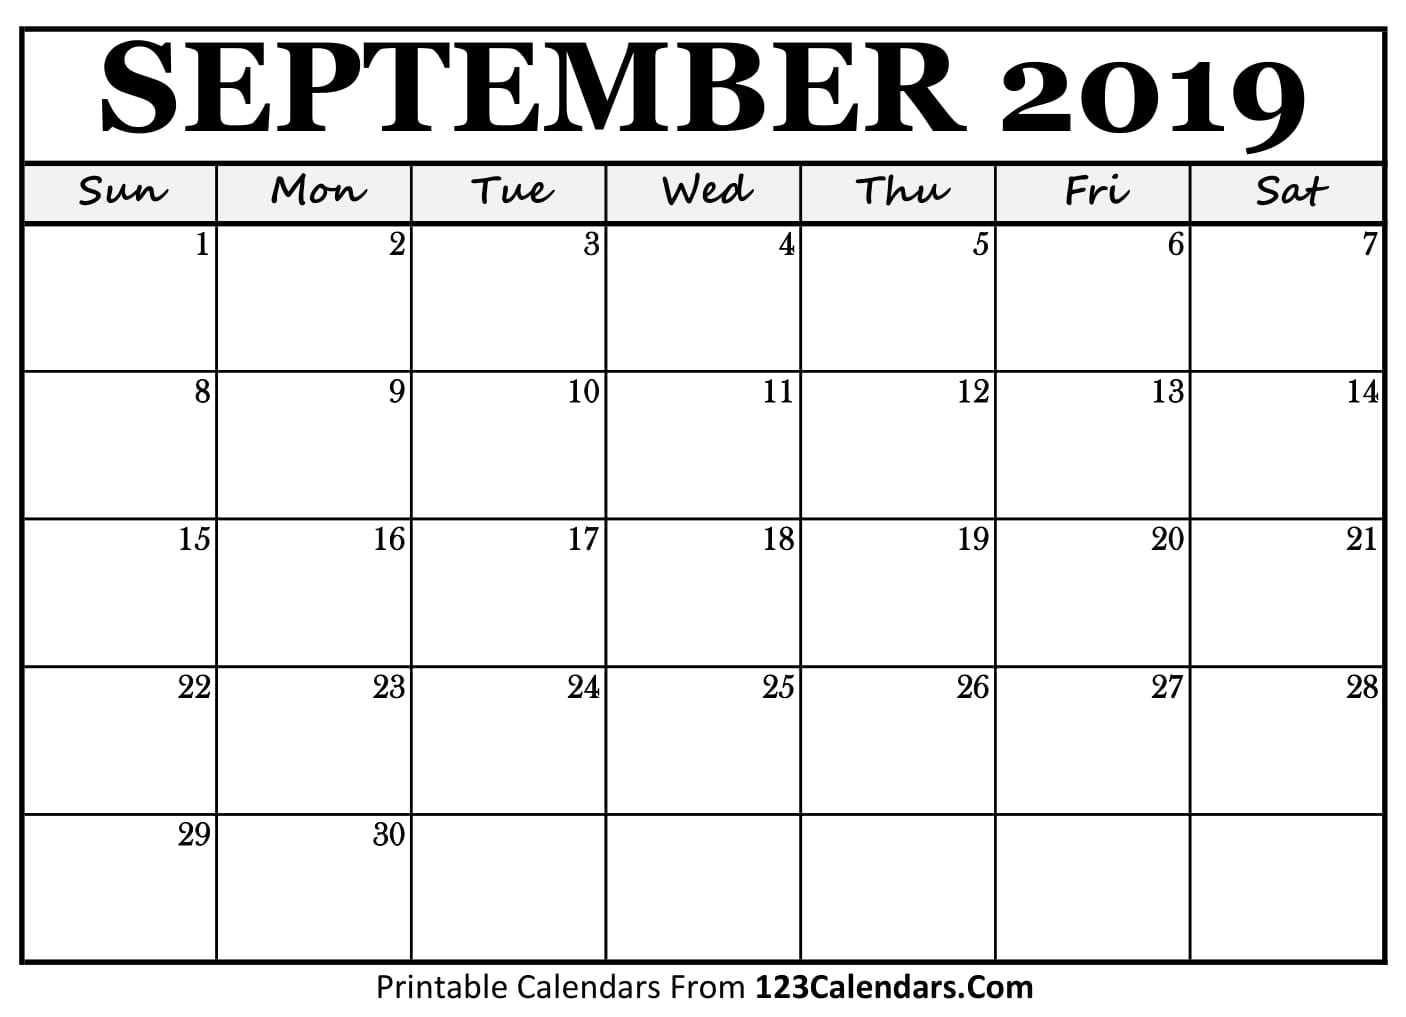 September 2019 Printable Calendar | 123Calendars throughout Printable Blank September Calendar